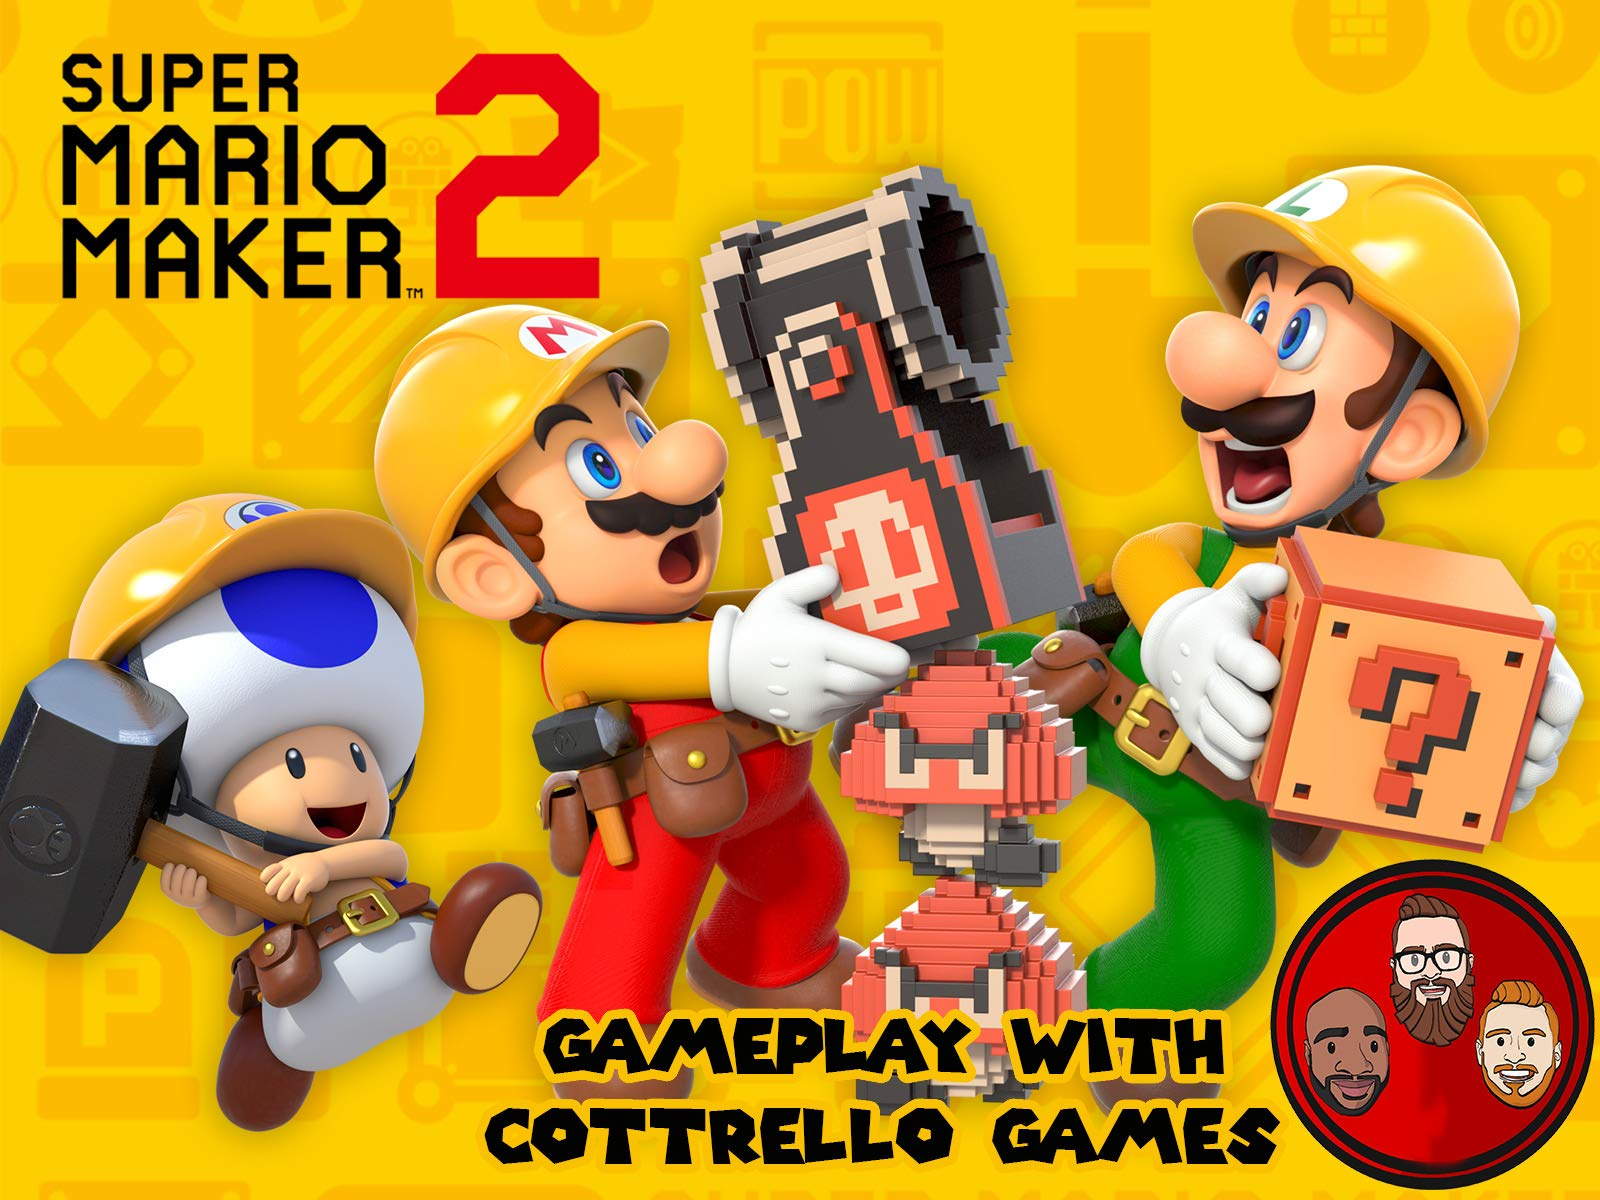 Super Mario Maker 2 Multiplayer with Cottrello Games